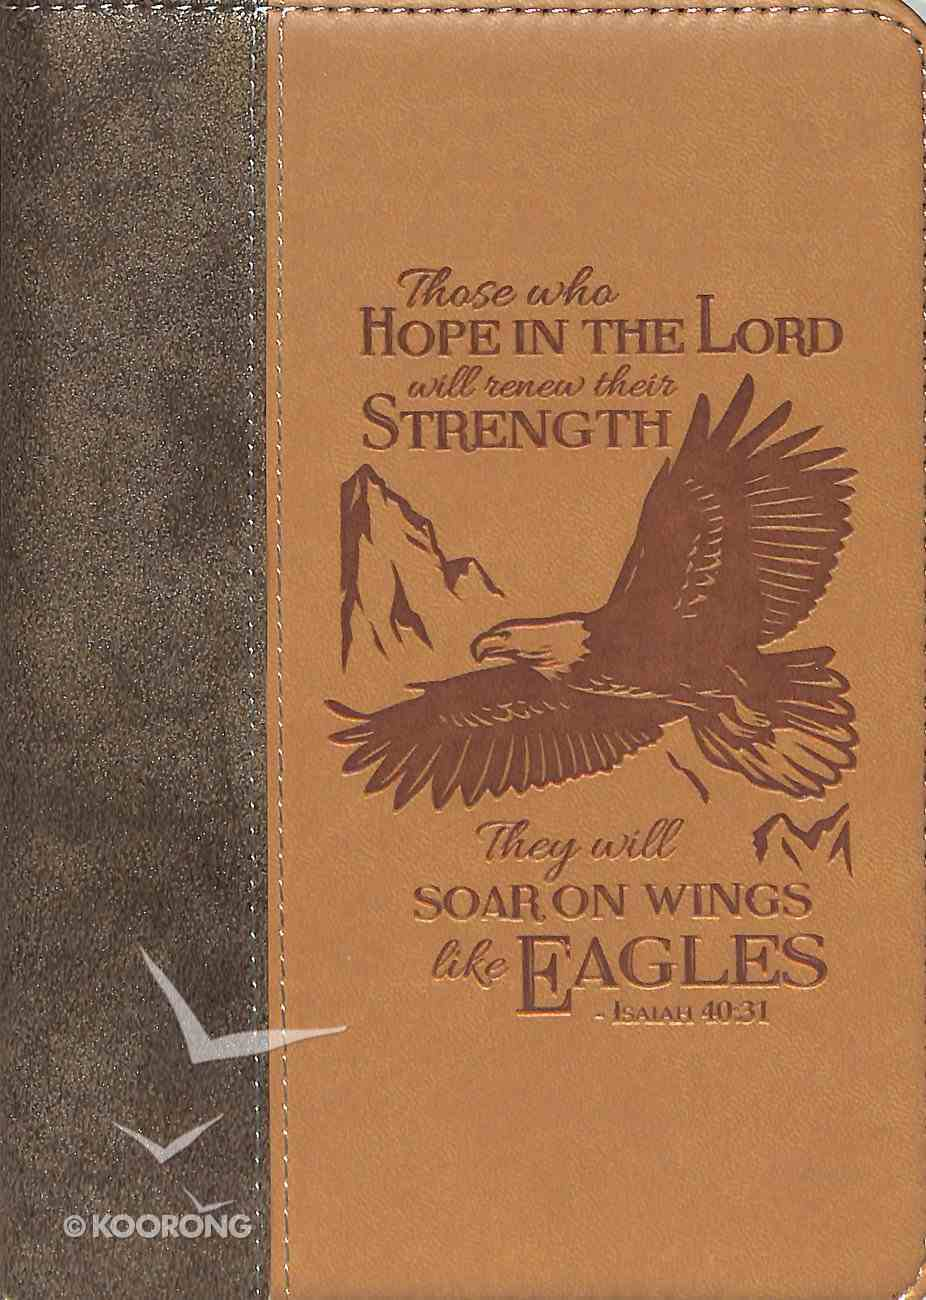 Journal Divine Details: Those Who Hope in the Lord....Light/Dark Brown, Zippered Closure Imitation Leather